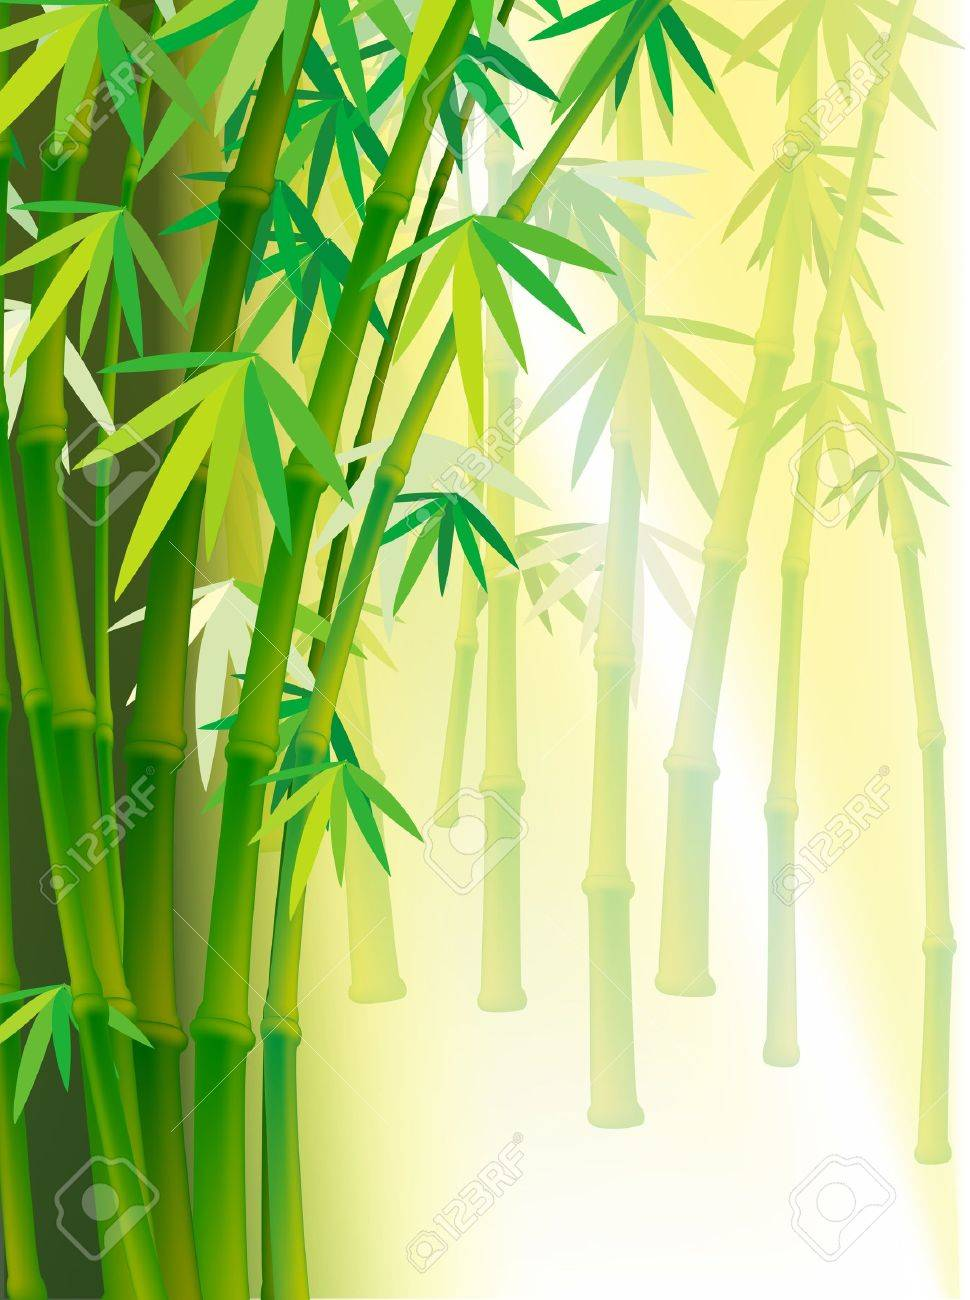 Illustration Bamboo background with copy space Stock Vector - 13986679